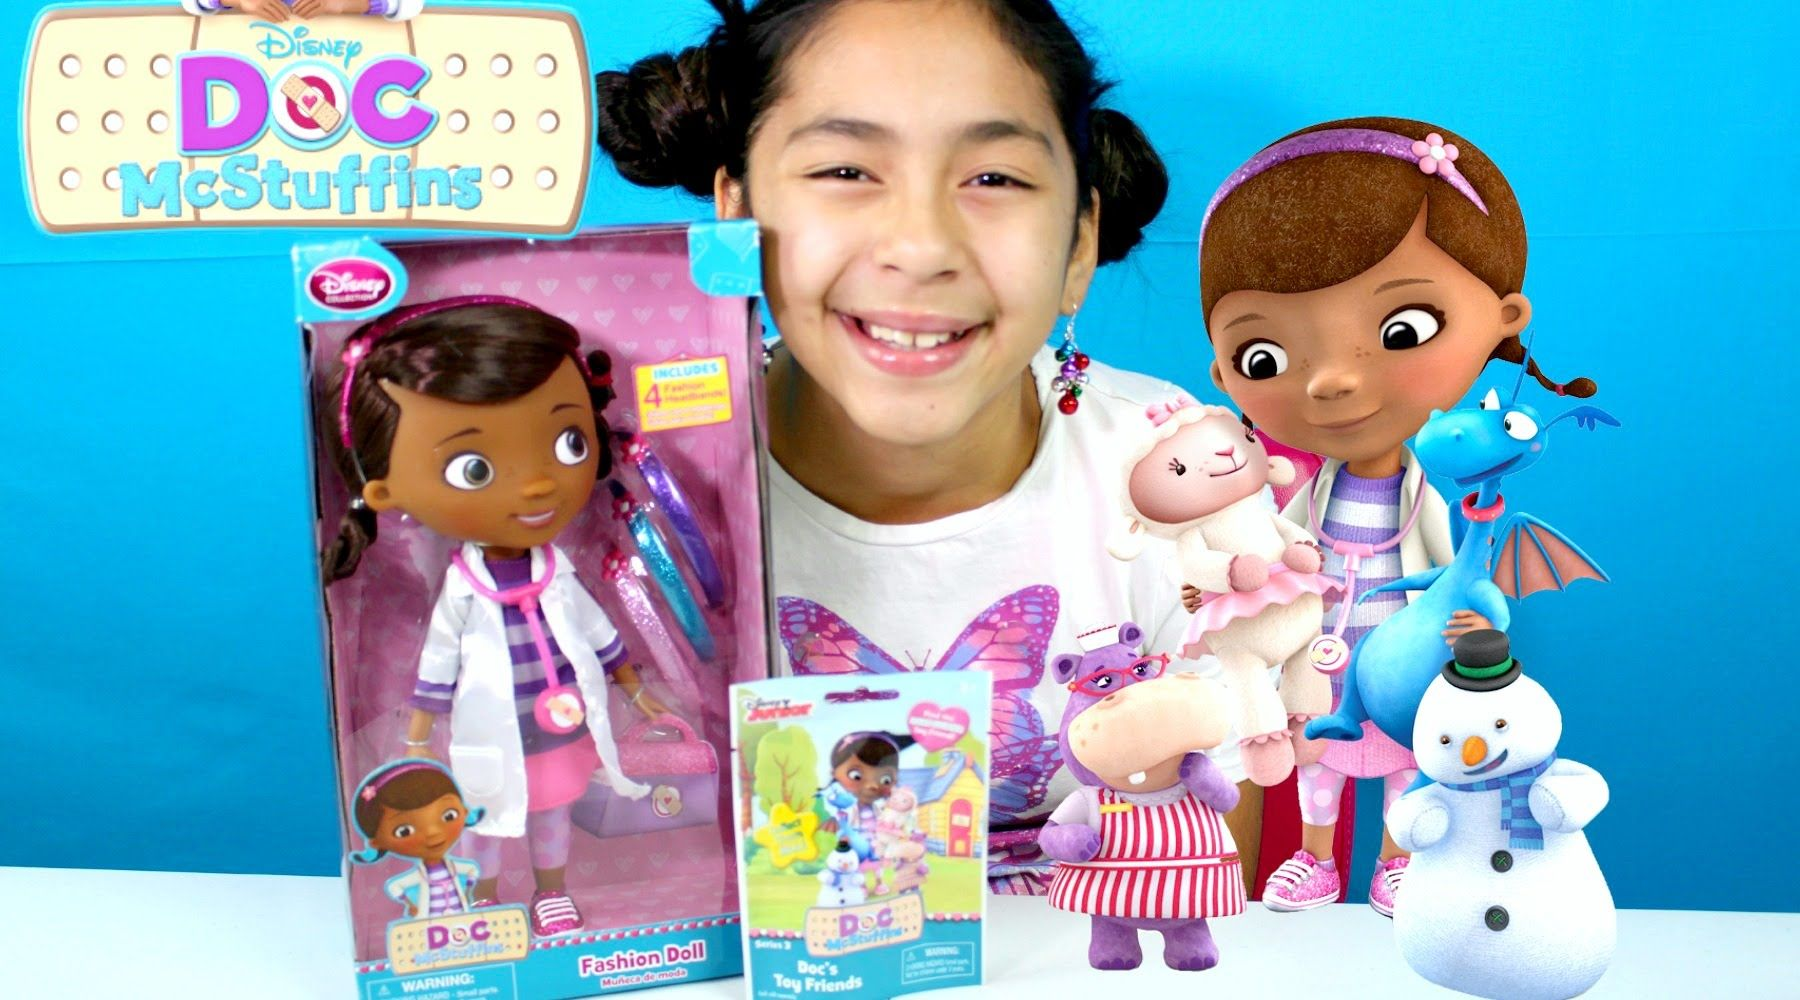 Docmcstuffing Fashion Doll Playset With Accessories B2cutecupcakes Fashion Dolls Playset Doc Mcstuffins Toys